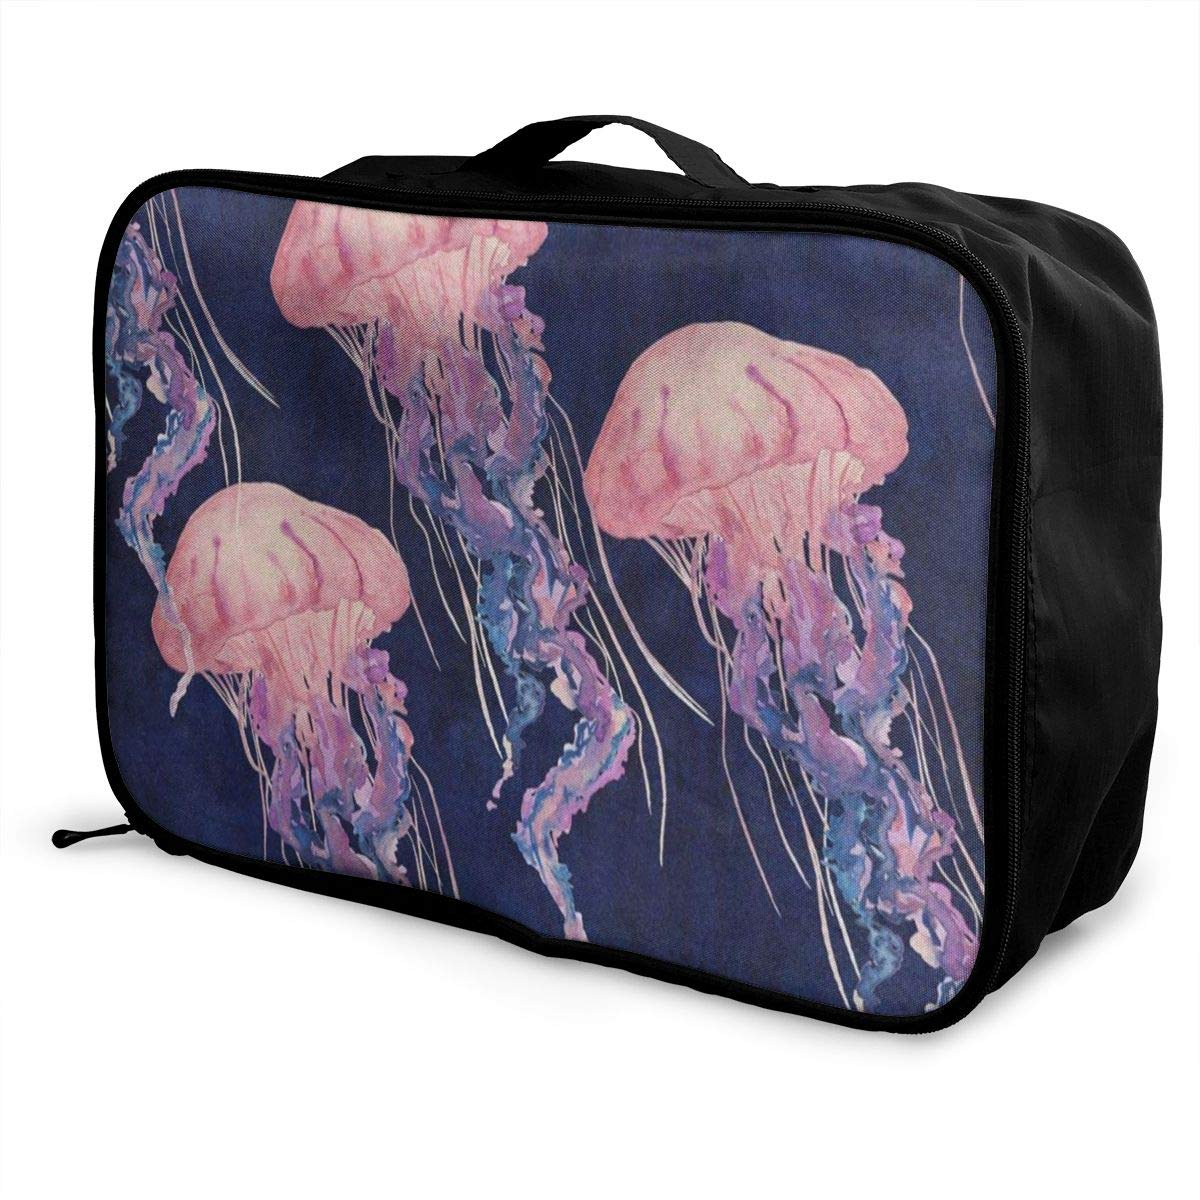 Portable Luggage Duffel Bag Pink Jellyfish Travel Bags Carry-on In Trolley Handle